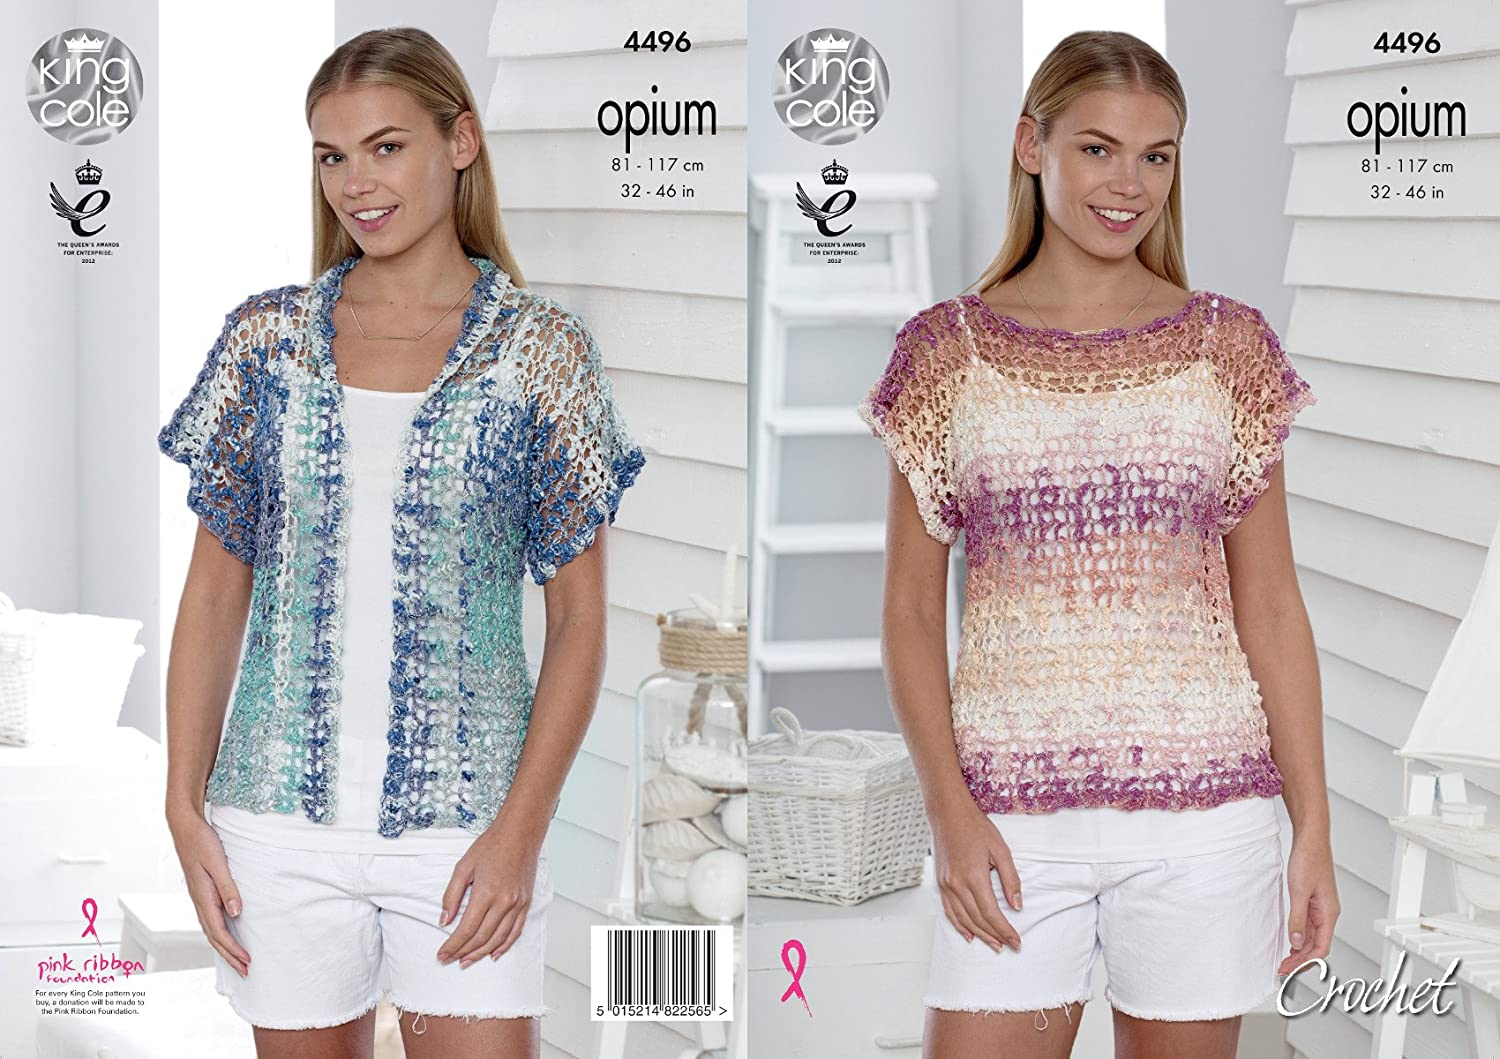 King Cole Womens Opium Crochet Pattern Ladies Mesh Short Sleeve T Shirt & Cardigan